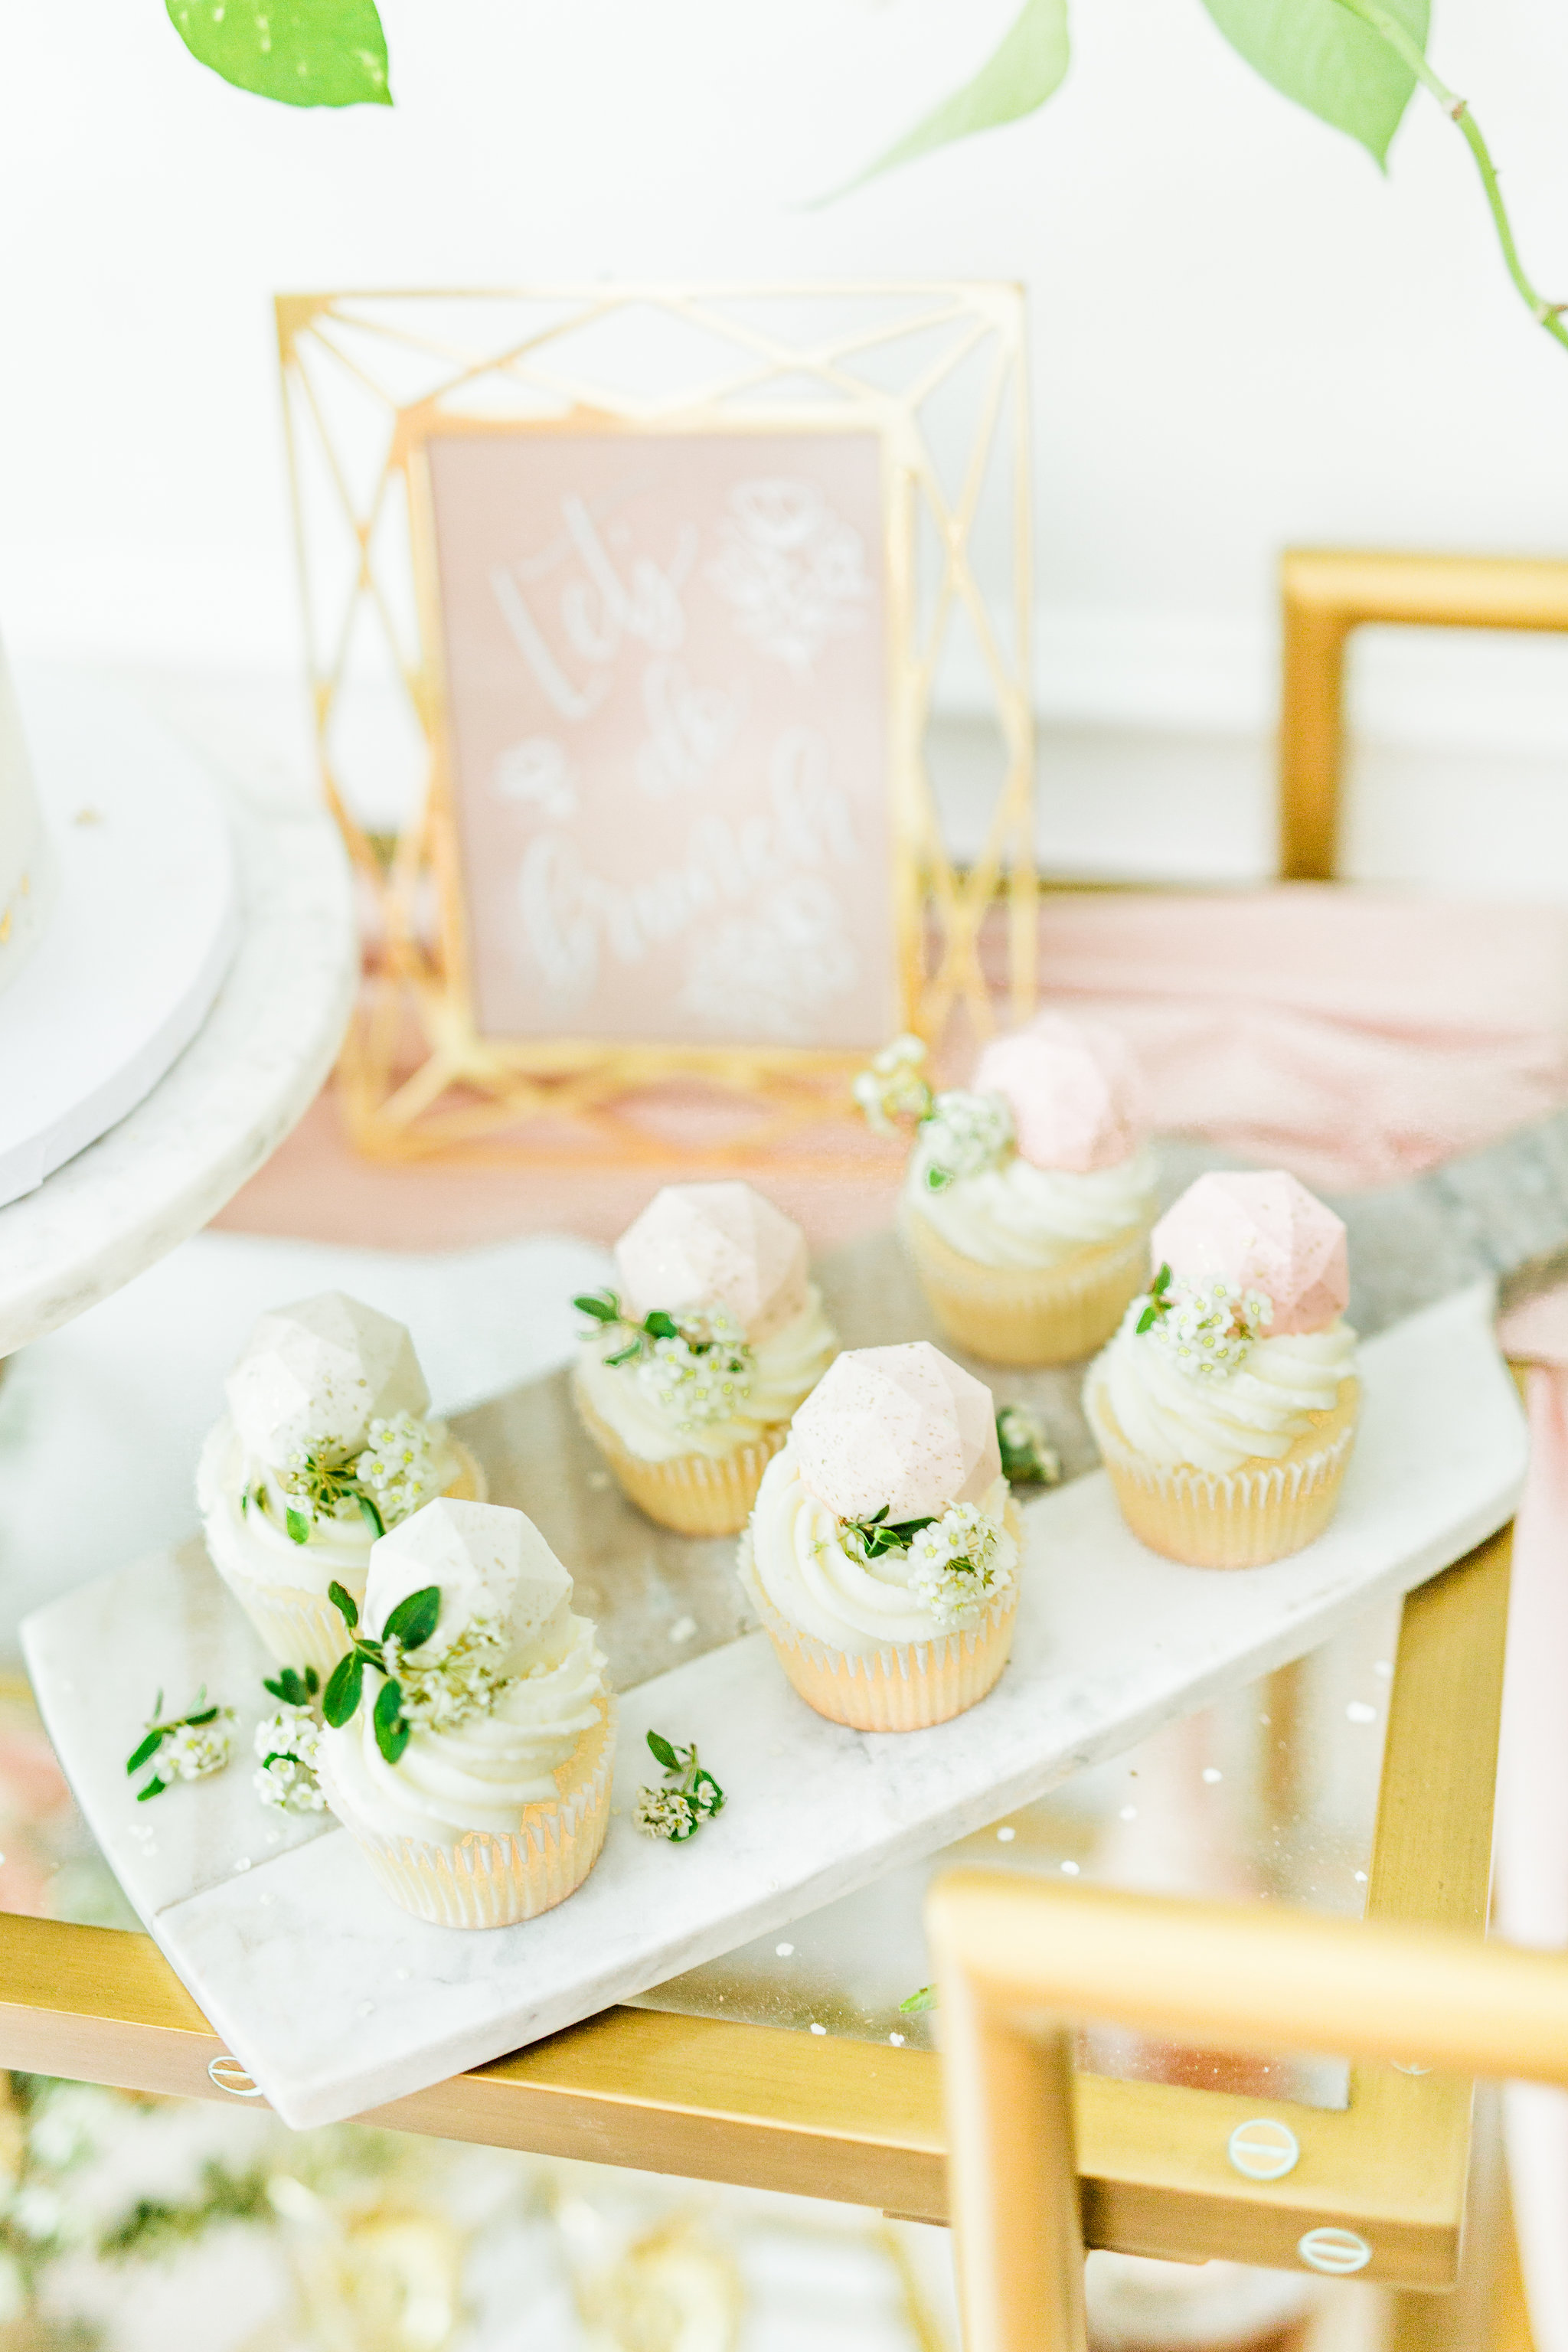 Dessert bar bridal shower Olivia and Oliver Gold, Blush and Greenry Plants Gilded Garden Styled Bridal Shower Brunch with Bed Bath Beyond Joyfullygreen floral cupcakes with geometric gems.jpg